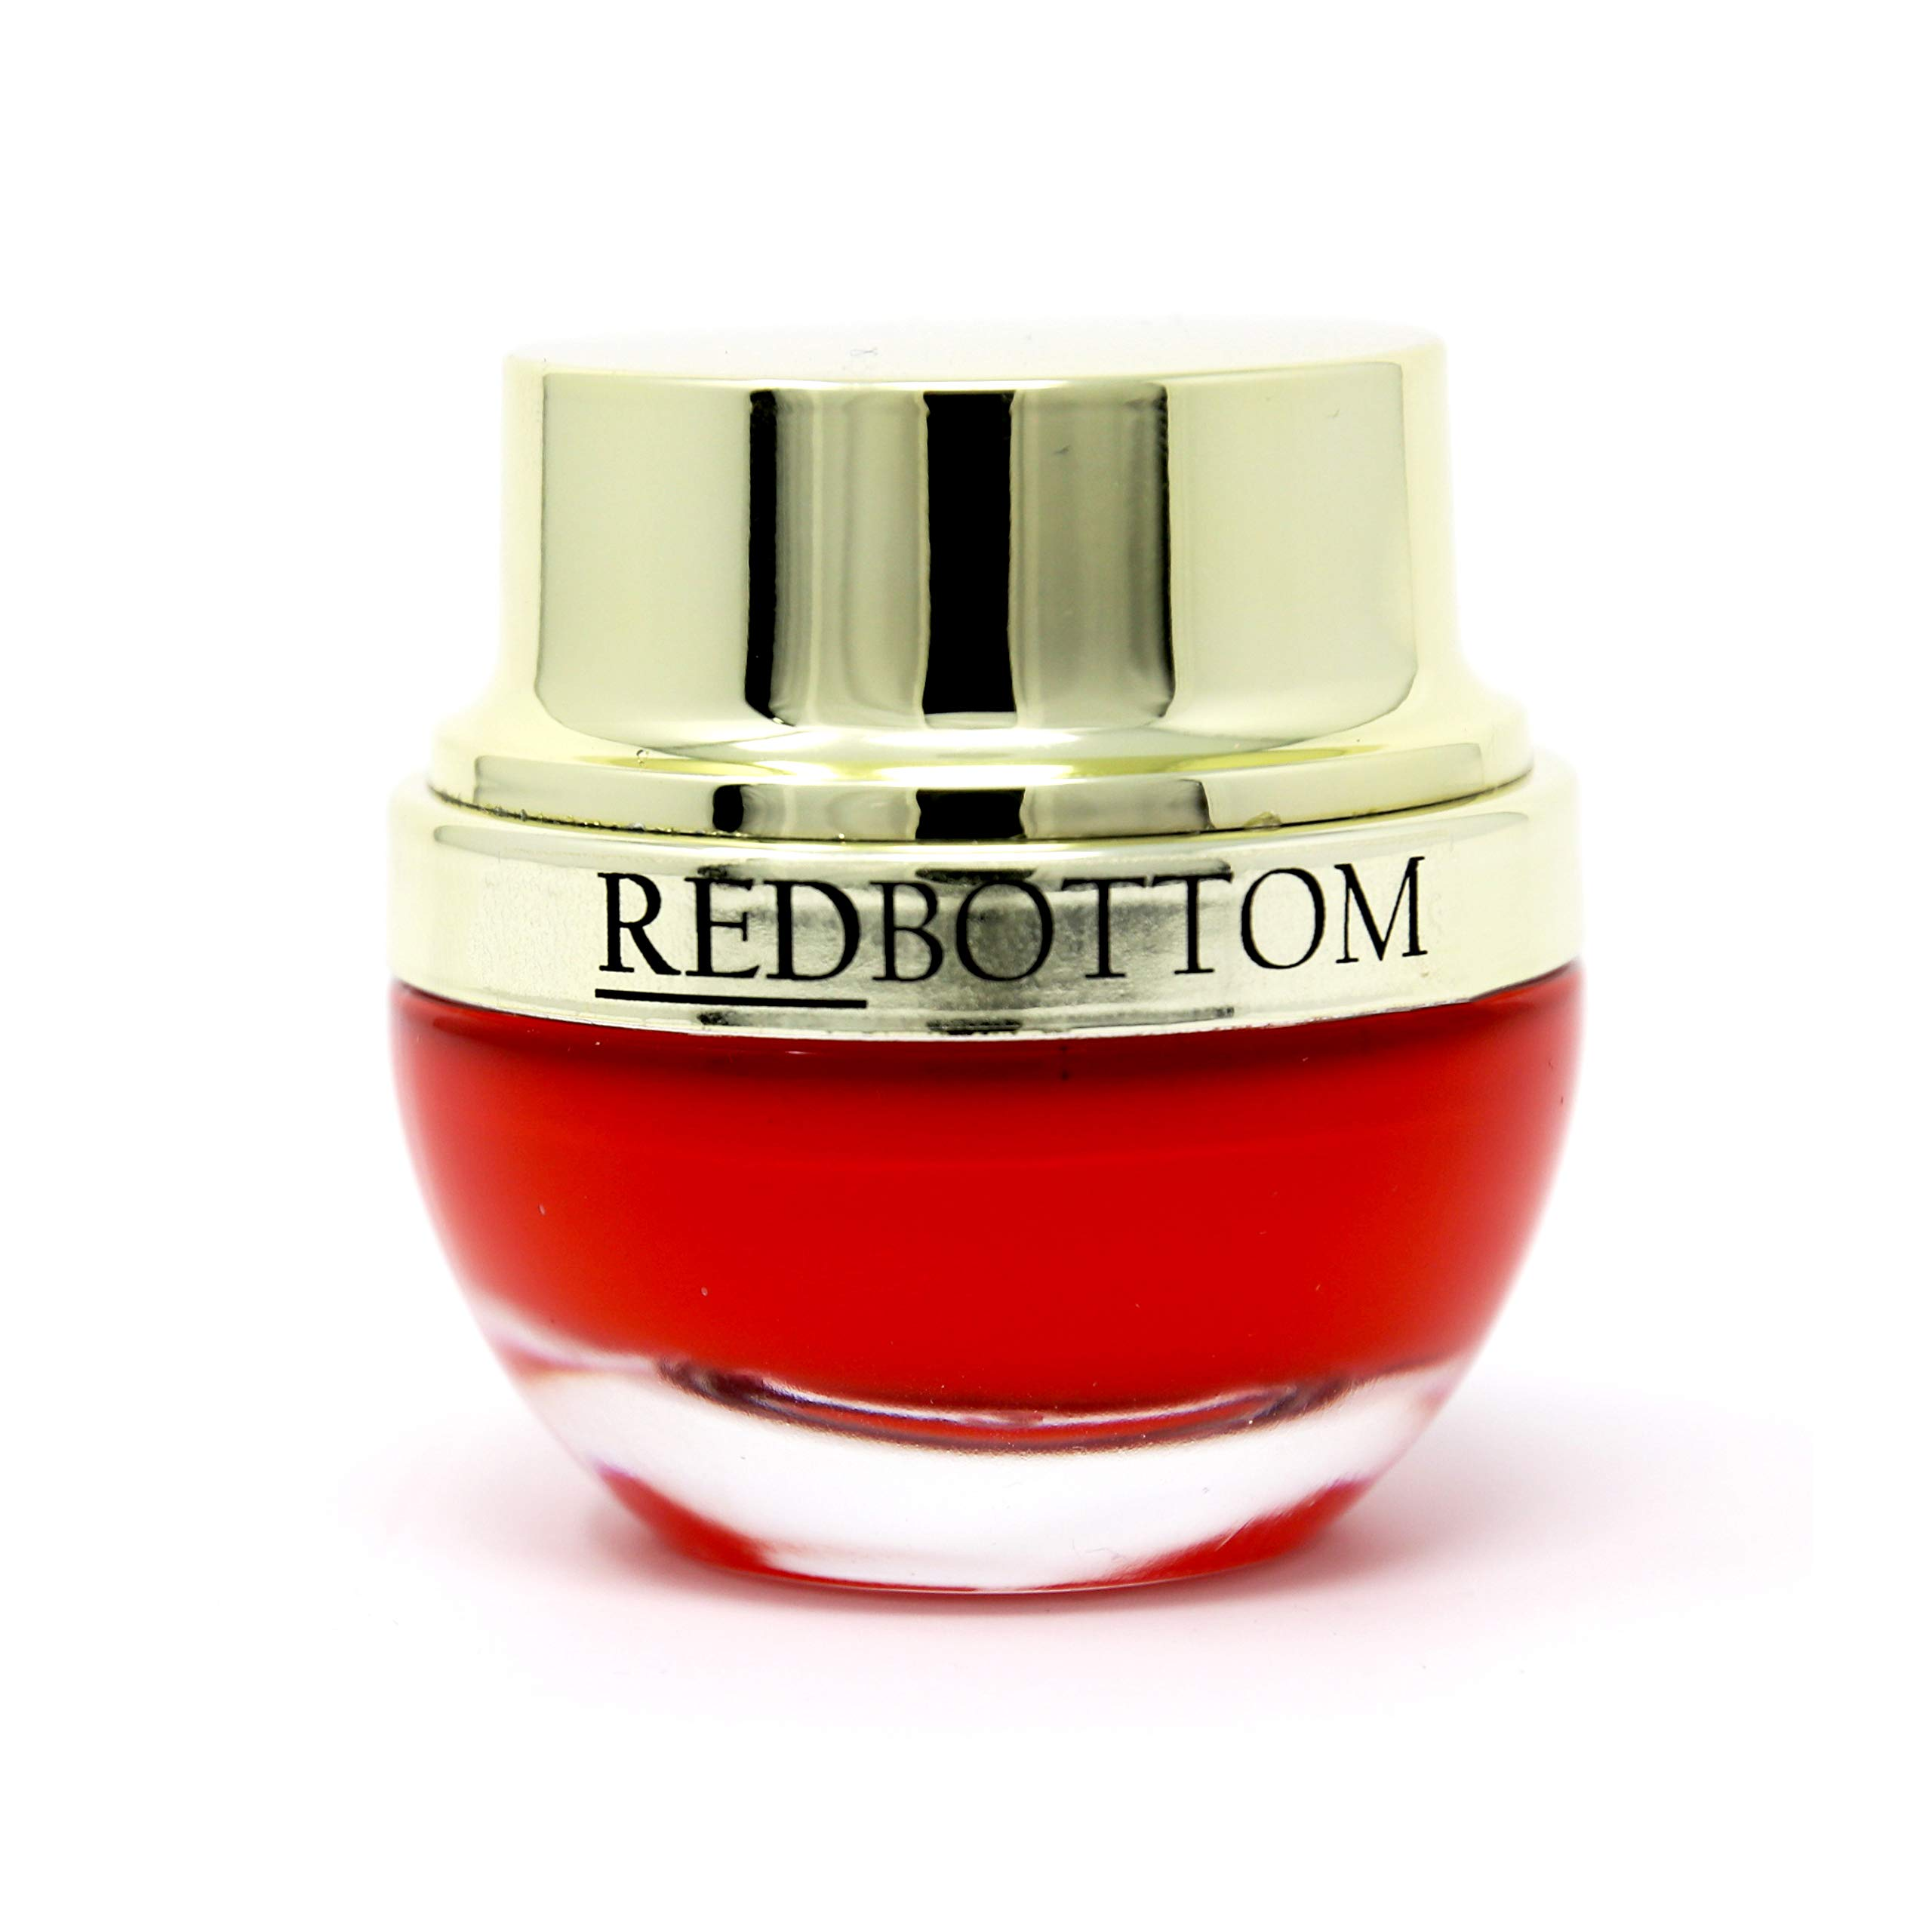 LuxDR RedBottom Rx Premium Luxury Red Soles Protective and Restoration Christian Louboutin Paint for Any Women Heels - Pumps - Men Loafers - Dance - Walk and ReVive, ReStore & Protect. Large 30ml USA by LuxDR